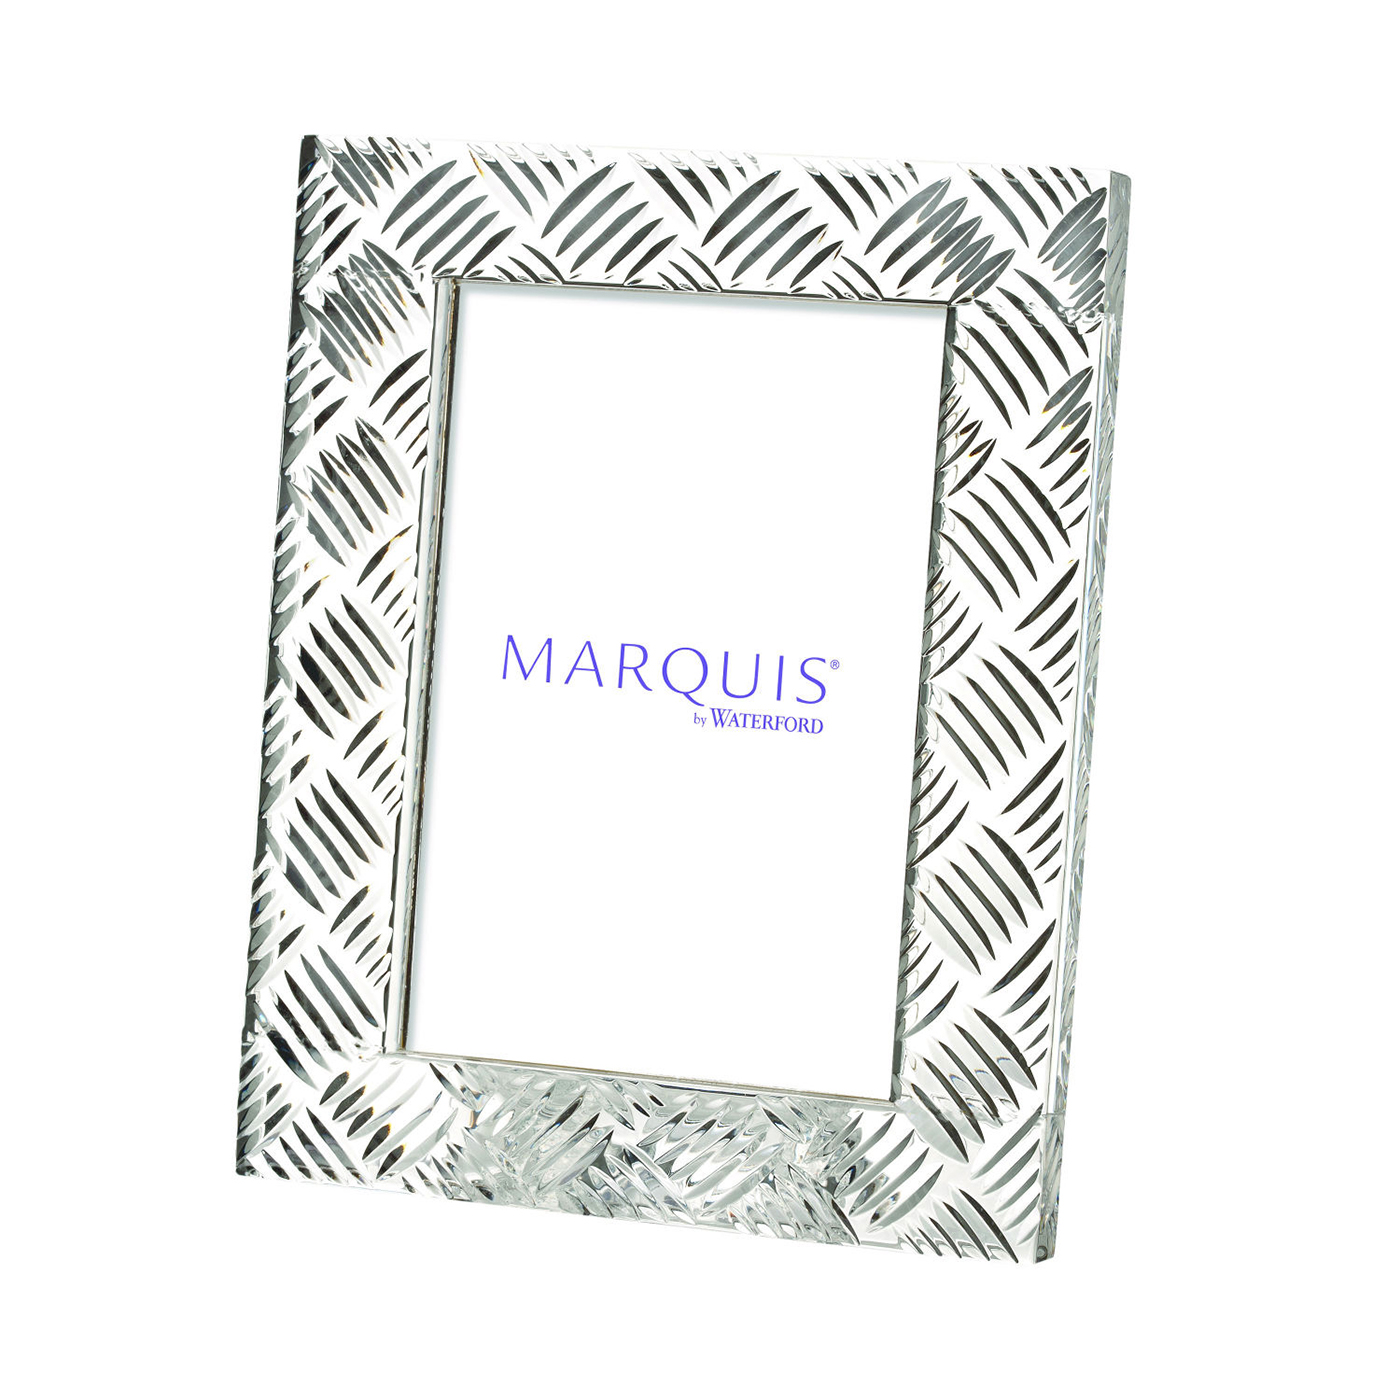 Marquis Versa 4 x 6 Frame by Waterford